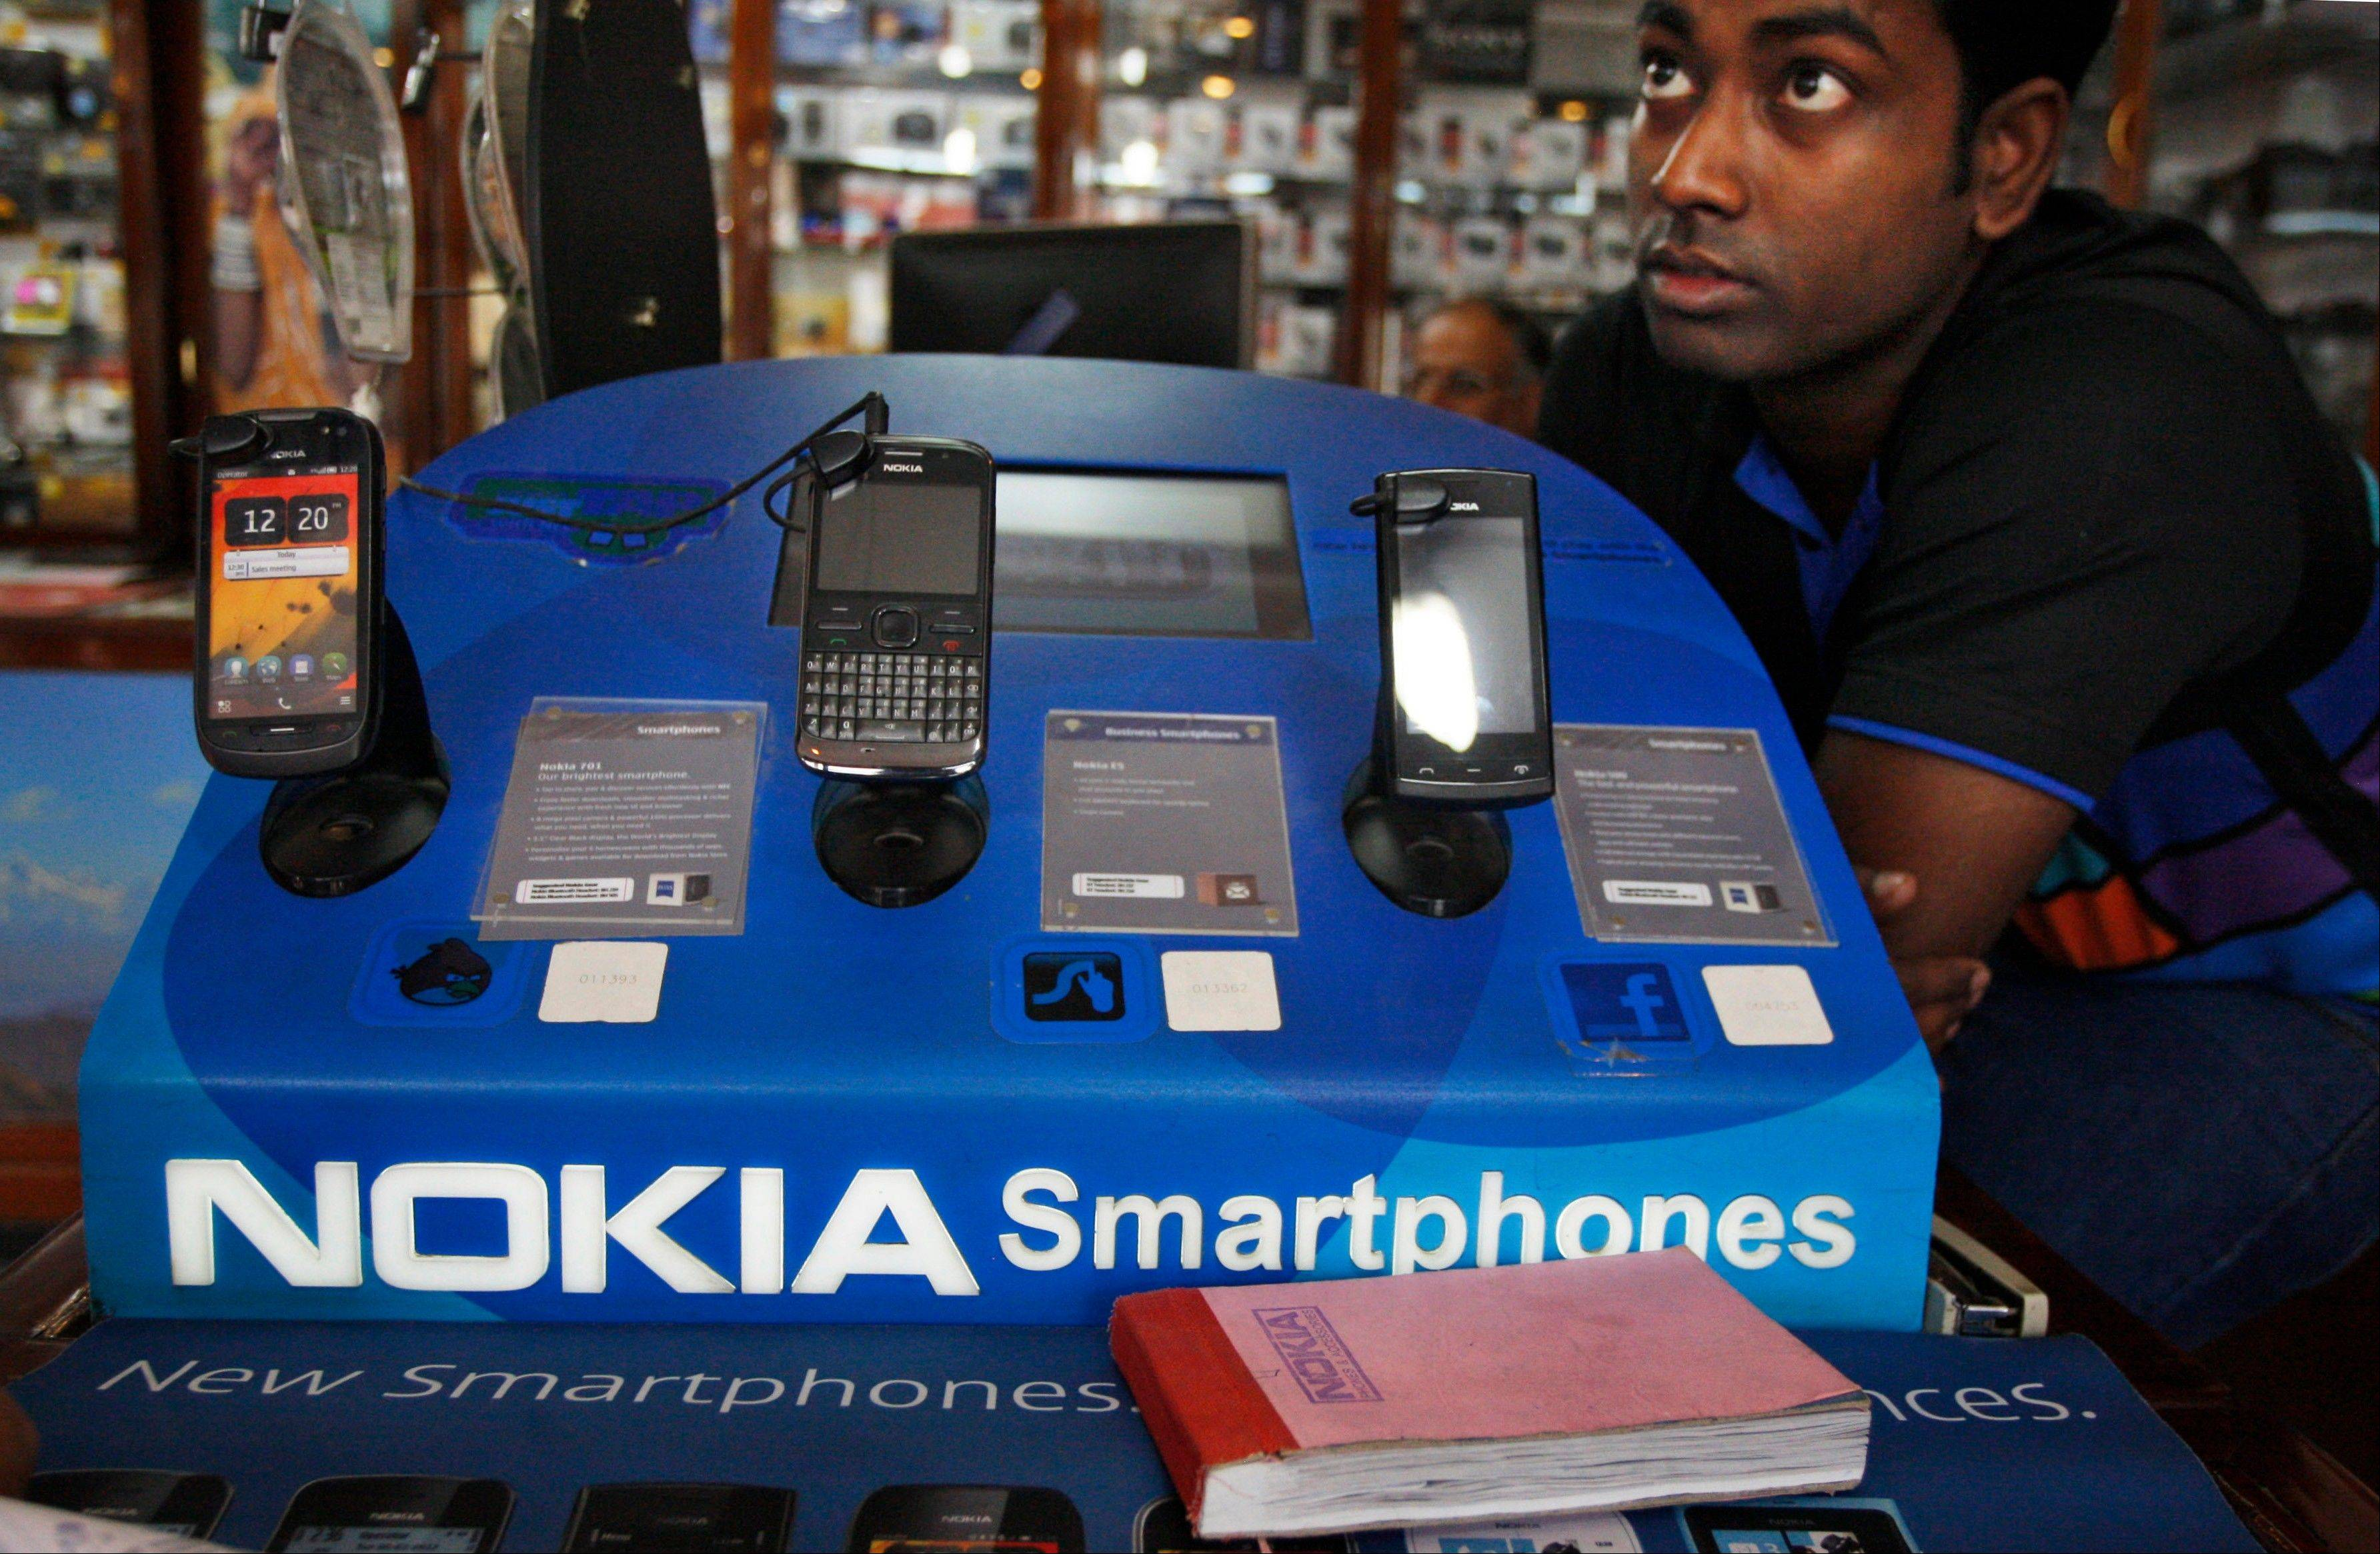 An Indian shopkeeper selling Nokia mobile phones awaits customers in New Delhi, India, Thursday. Nokia Corp. will lay off 10,000 jobs globally and close plants by the end of 2013, the company said Thursday.